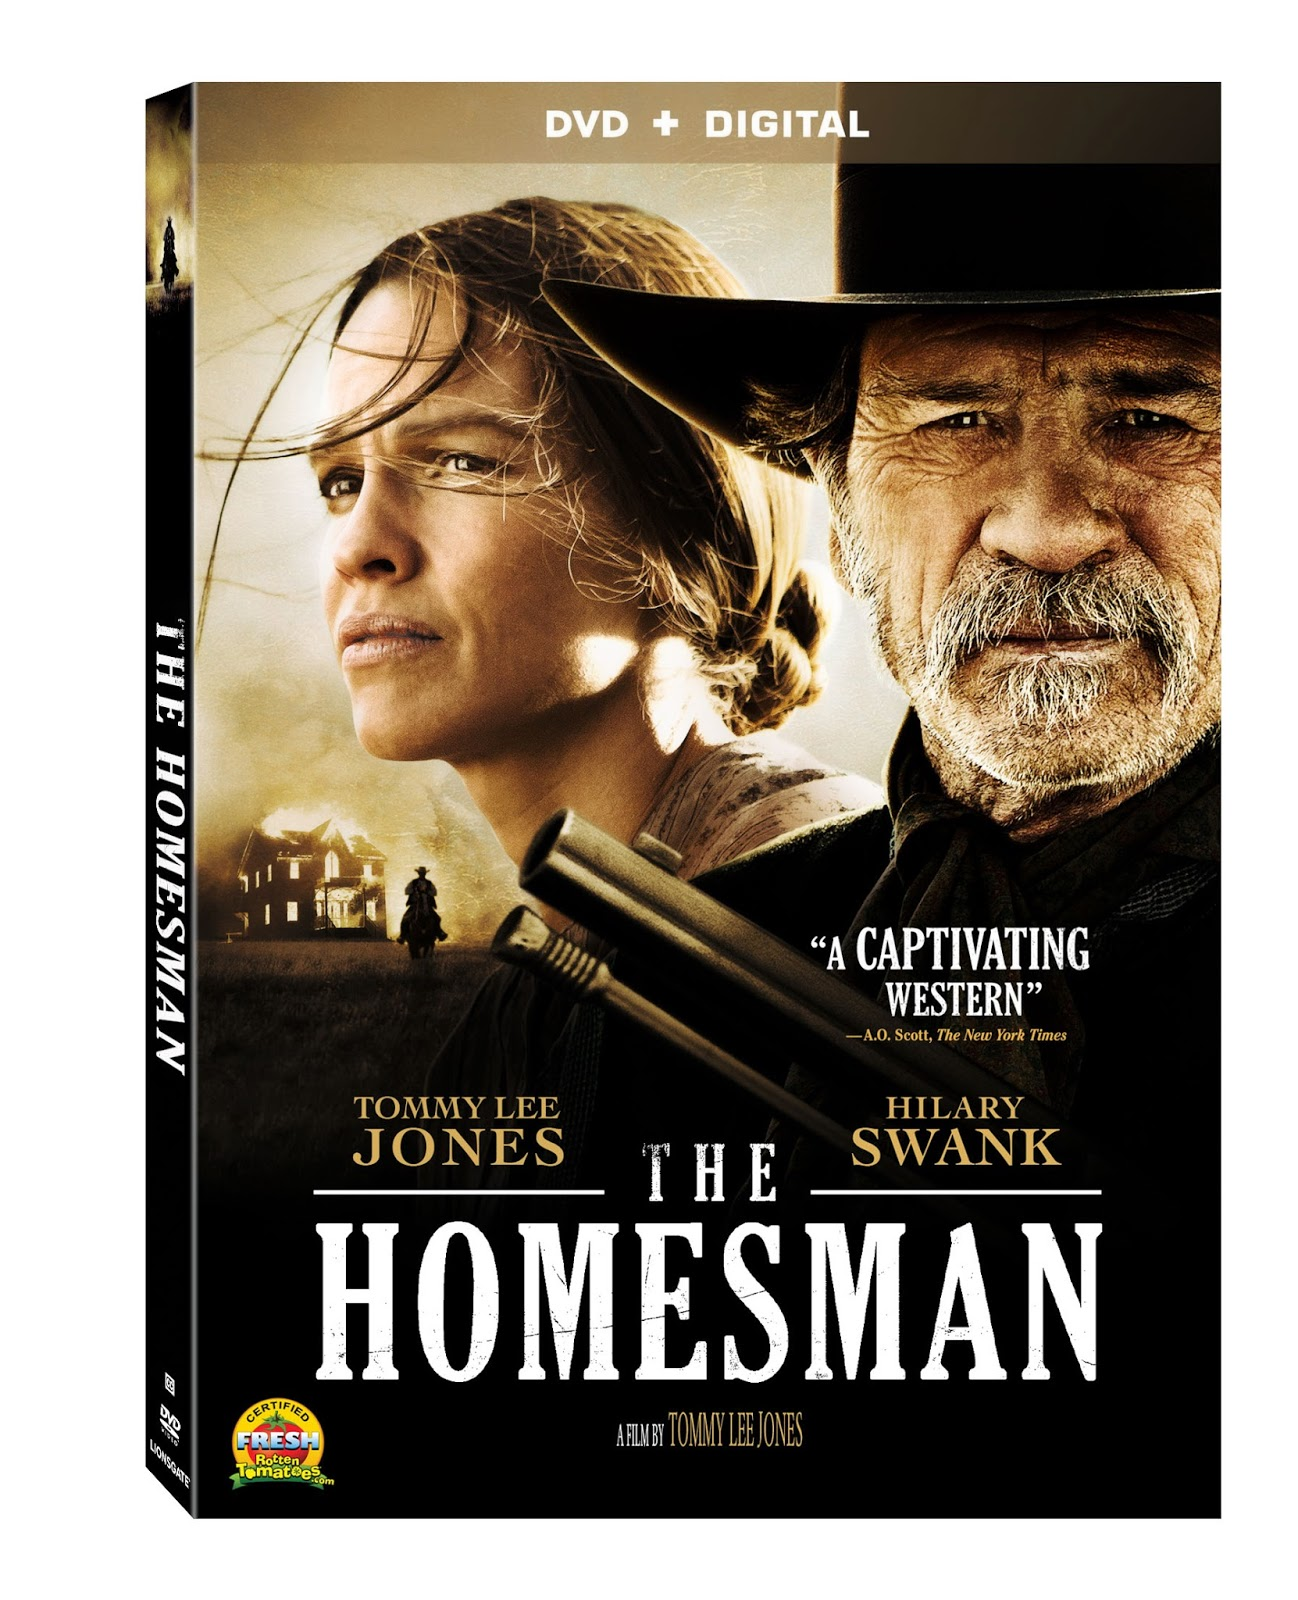 DVD Review - The Homesman